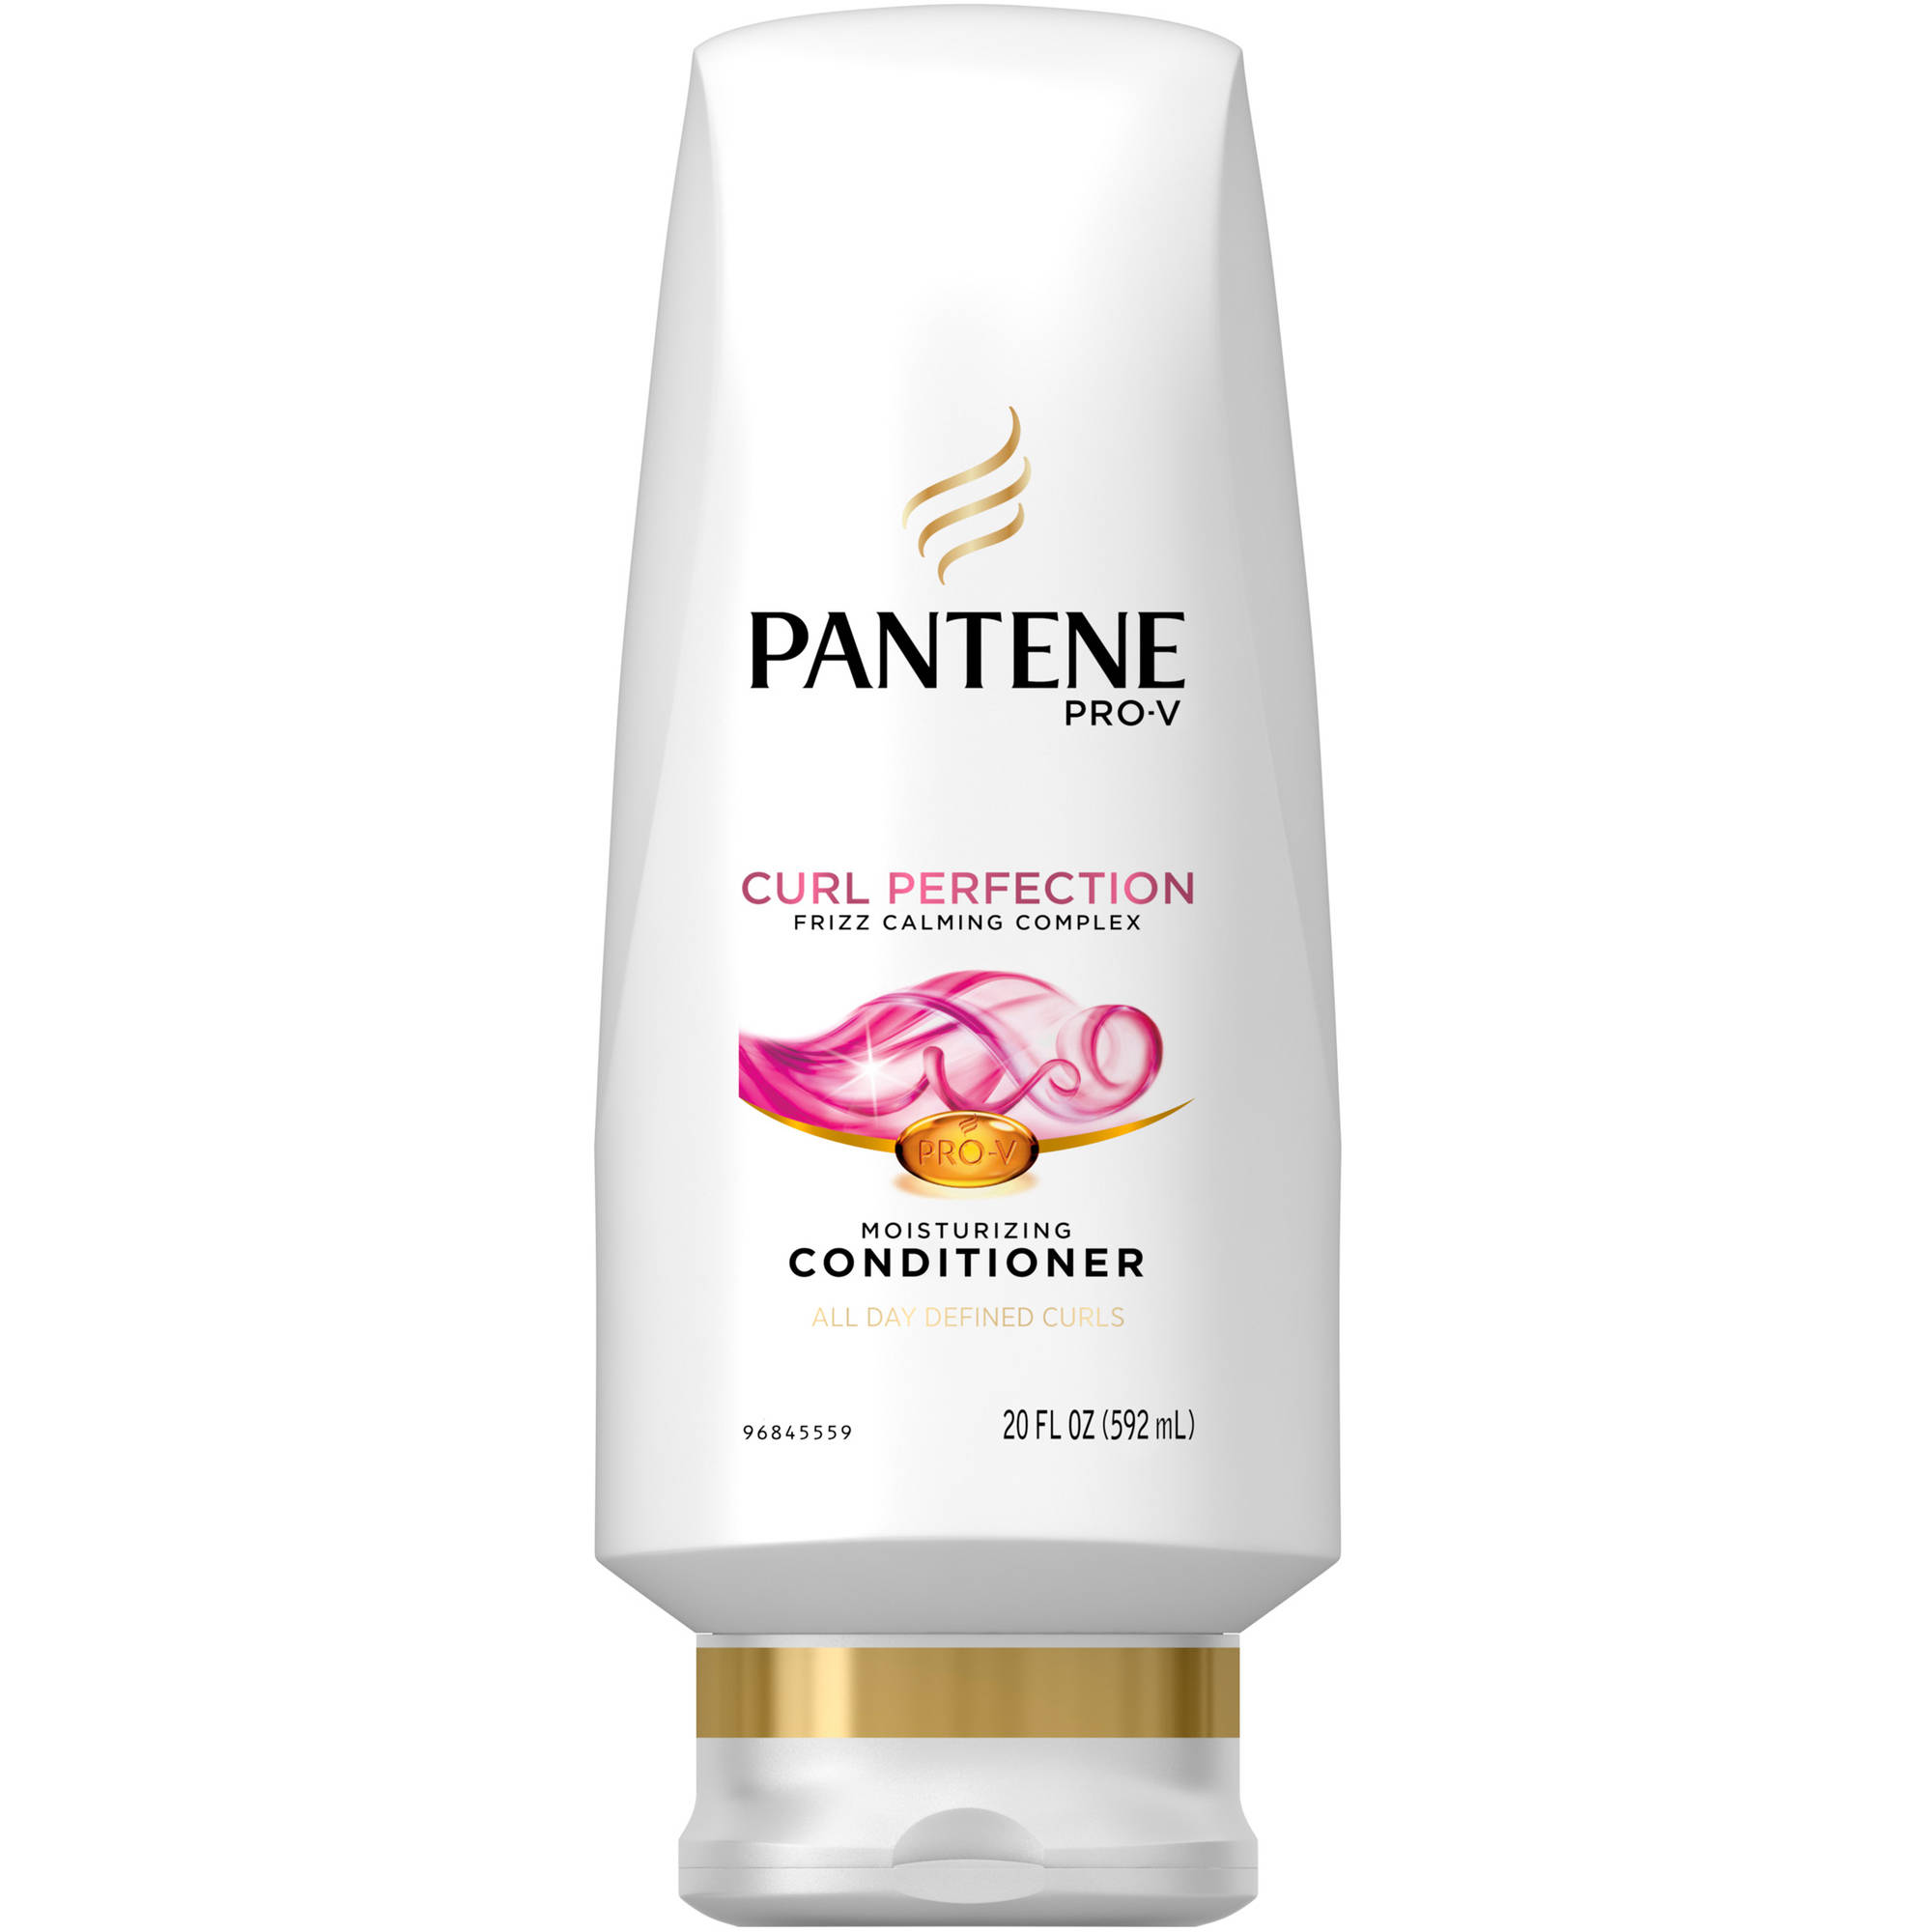 Pantene Pro-V Curl Perfection Moisturizing Conditioner (choose your size)